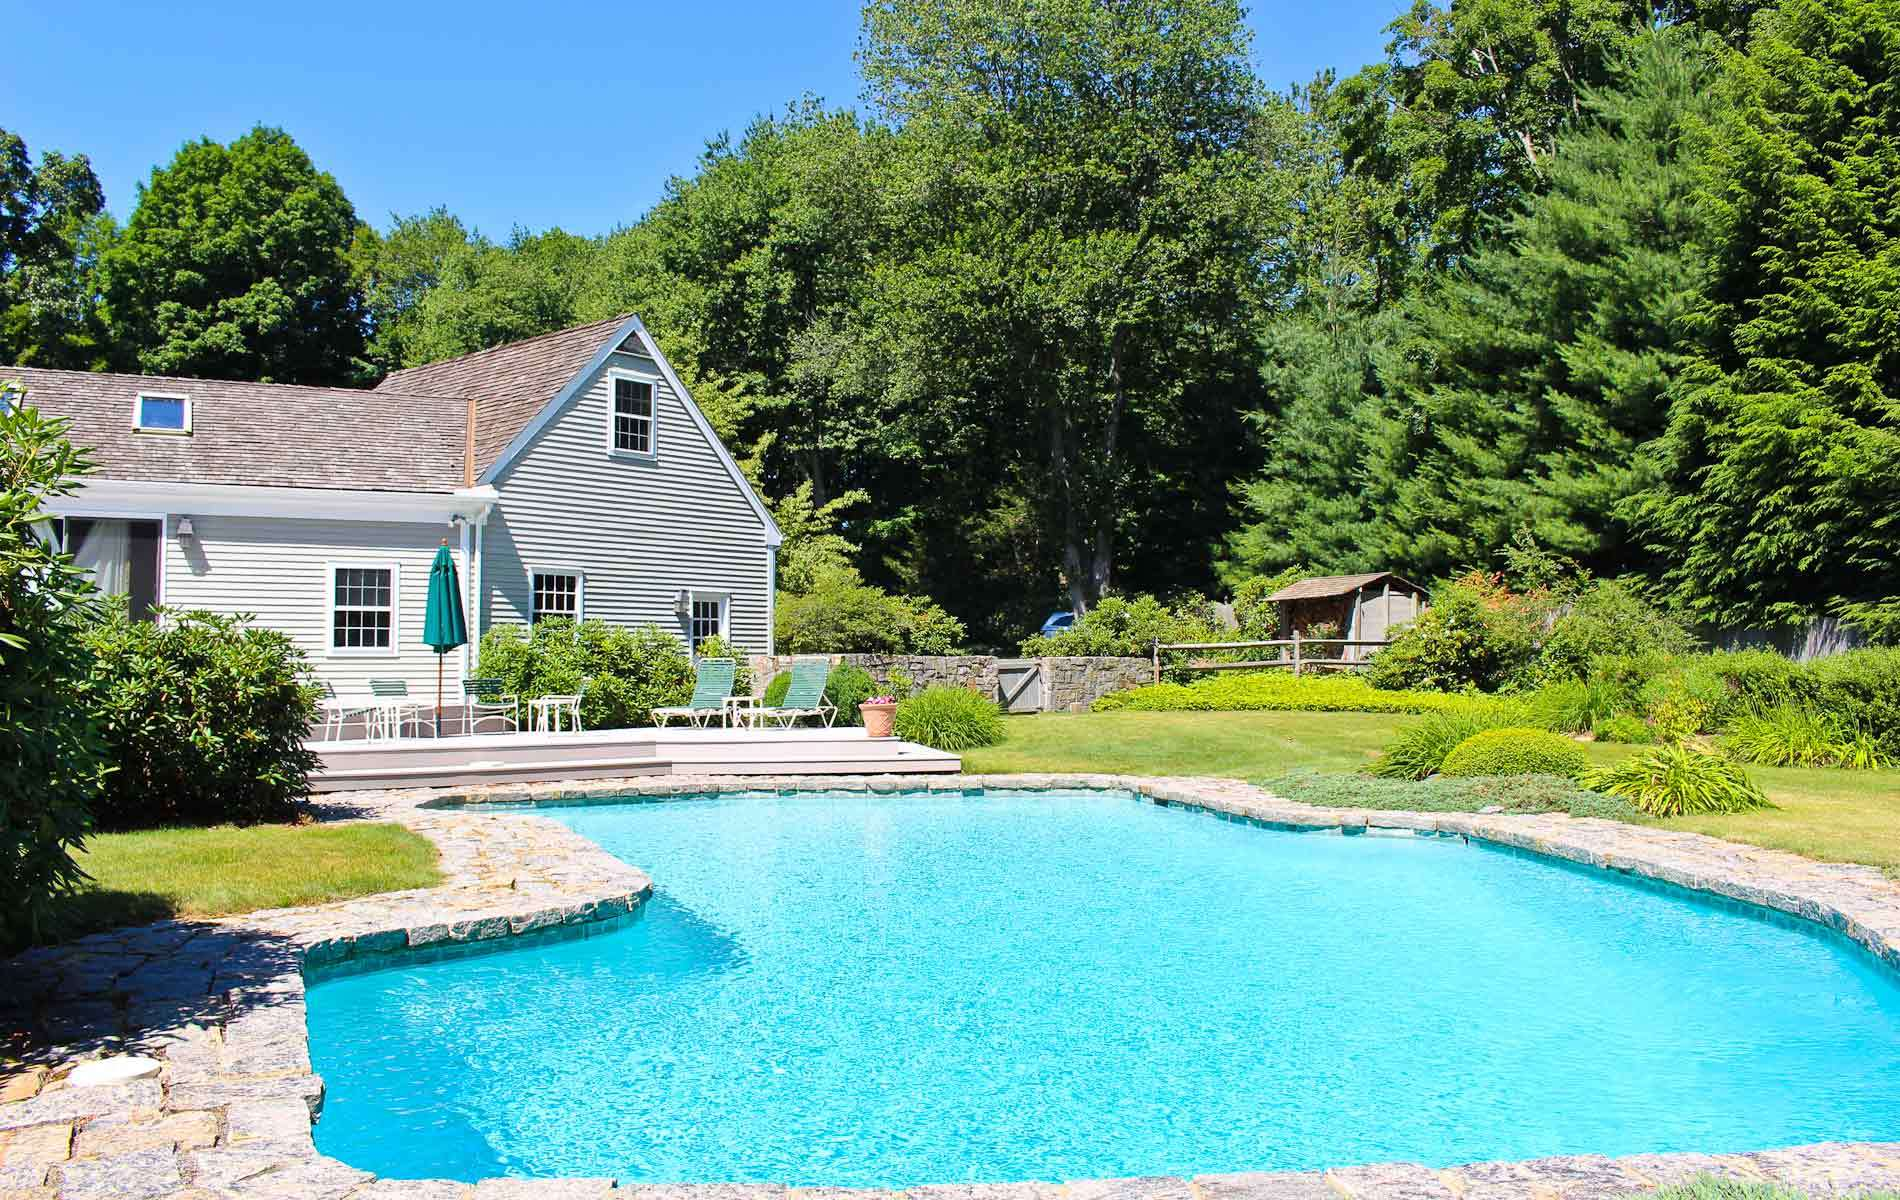 Homes With Swimming Pool For Sale In Redding Ct Find And